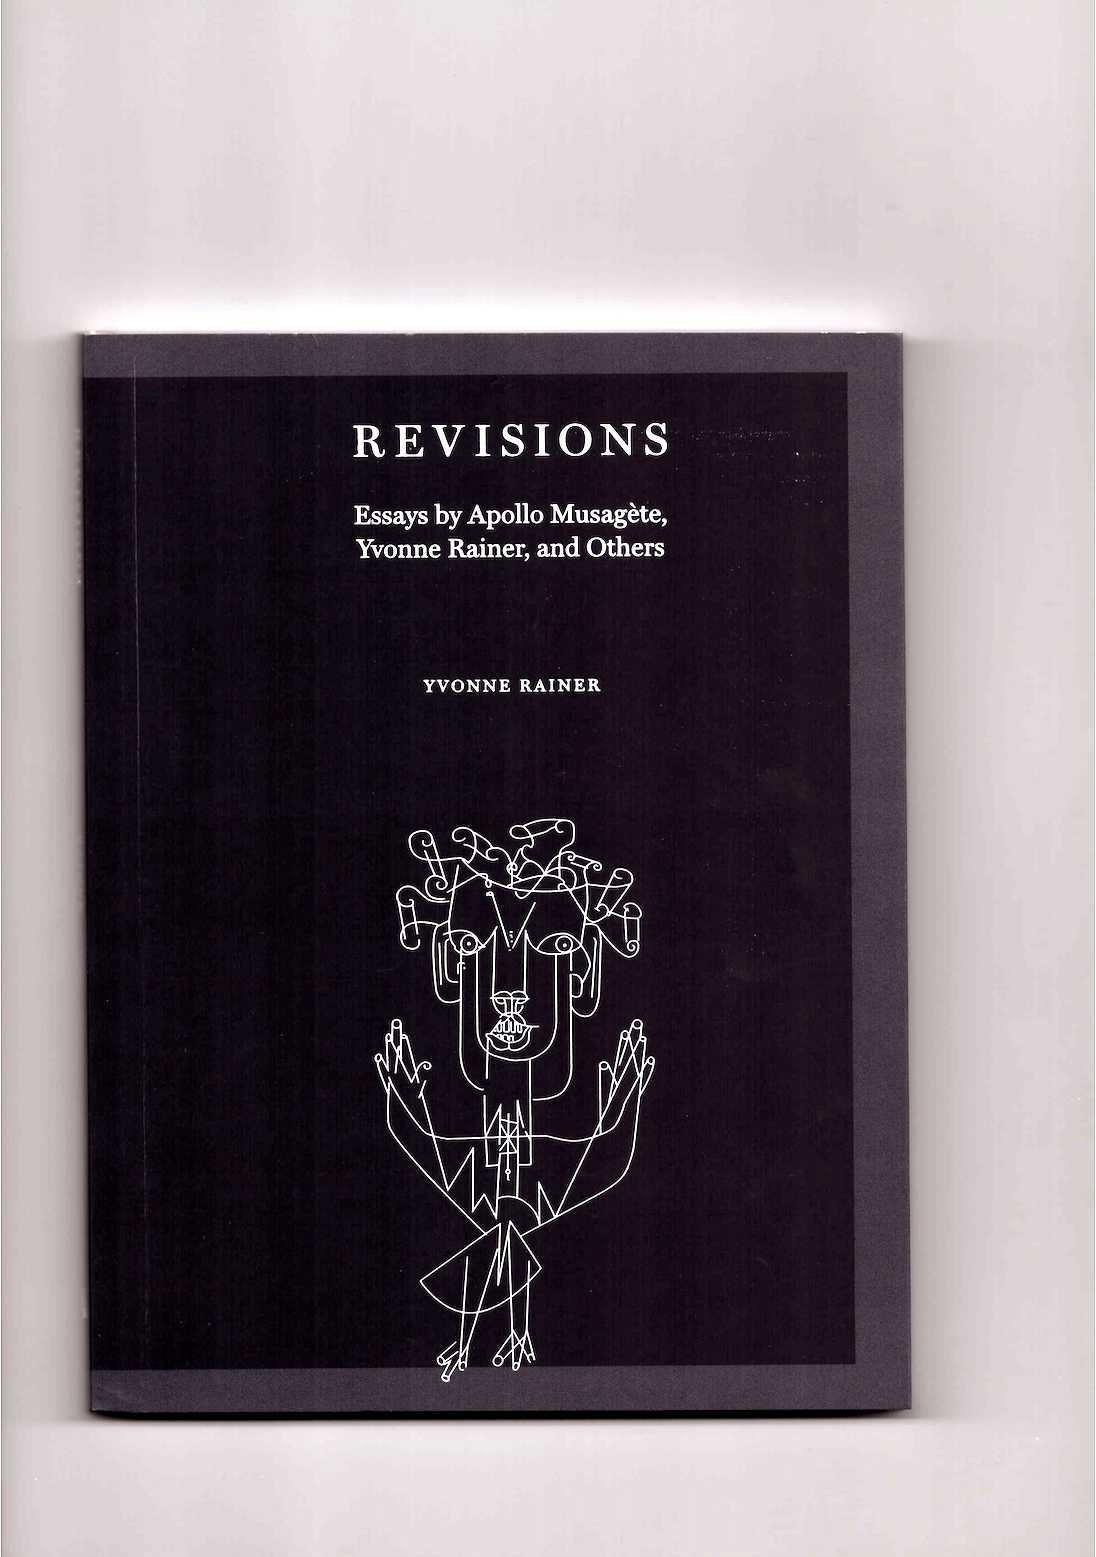 RAINER, Yvonne: CHURNER, Rachel (ed.) - Revisions: Essays by Apollo Musagète, Yvonne Rainer, and Others